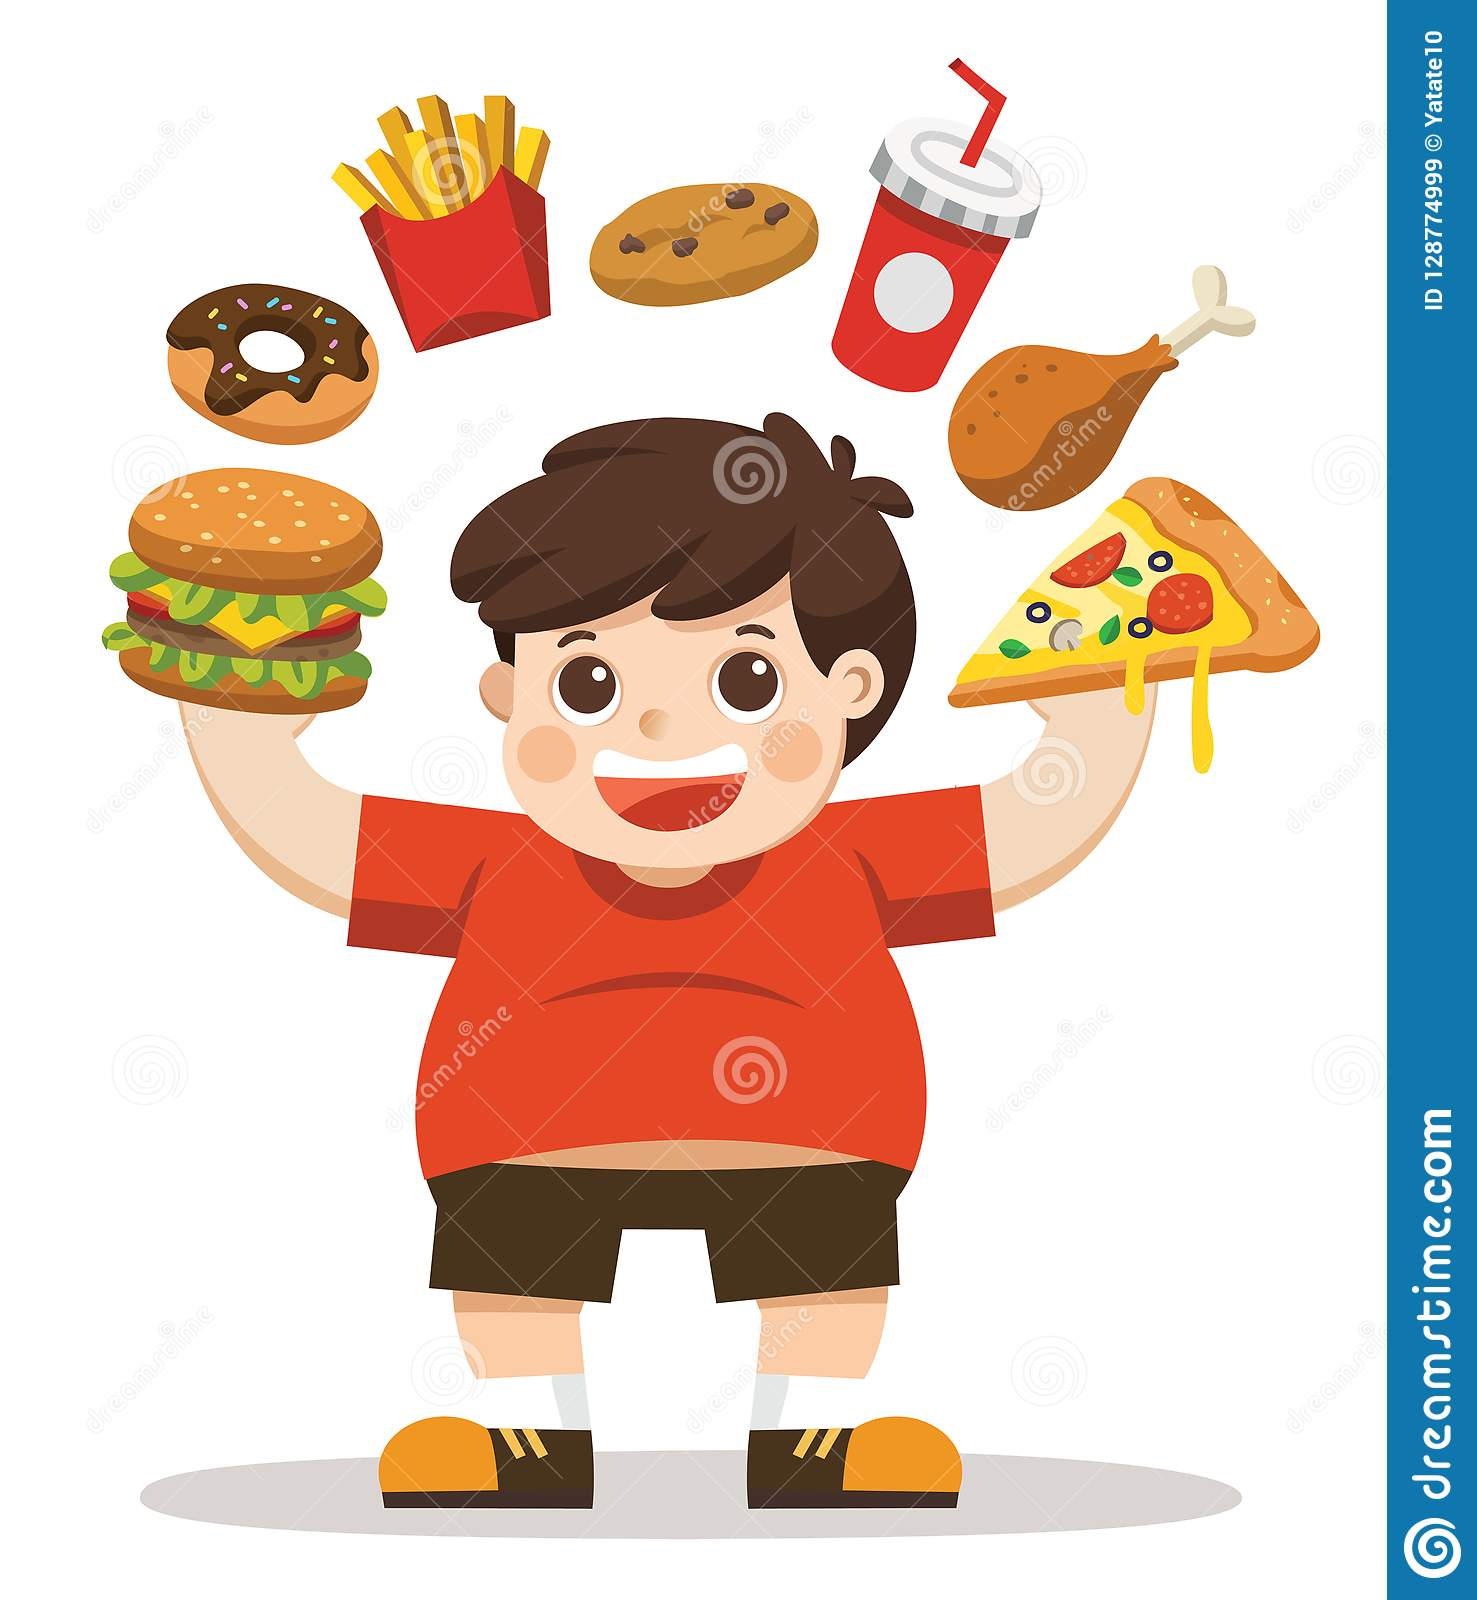 unhealthy cartoons illustrations amp vector stock images